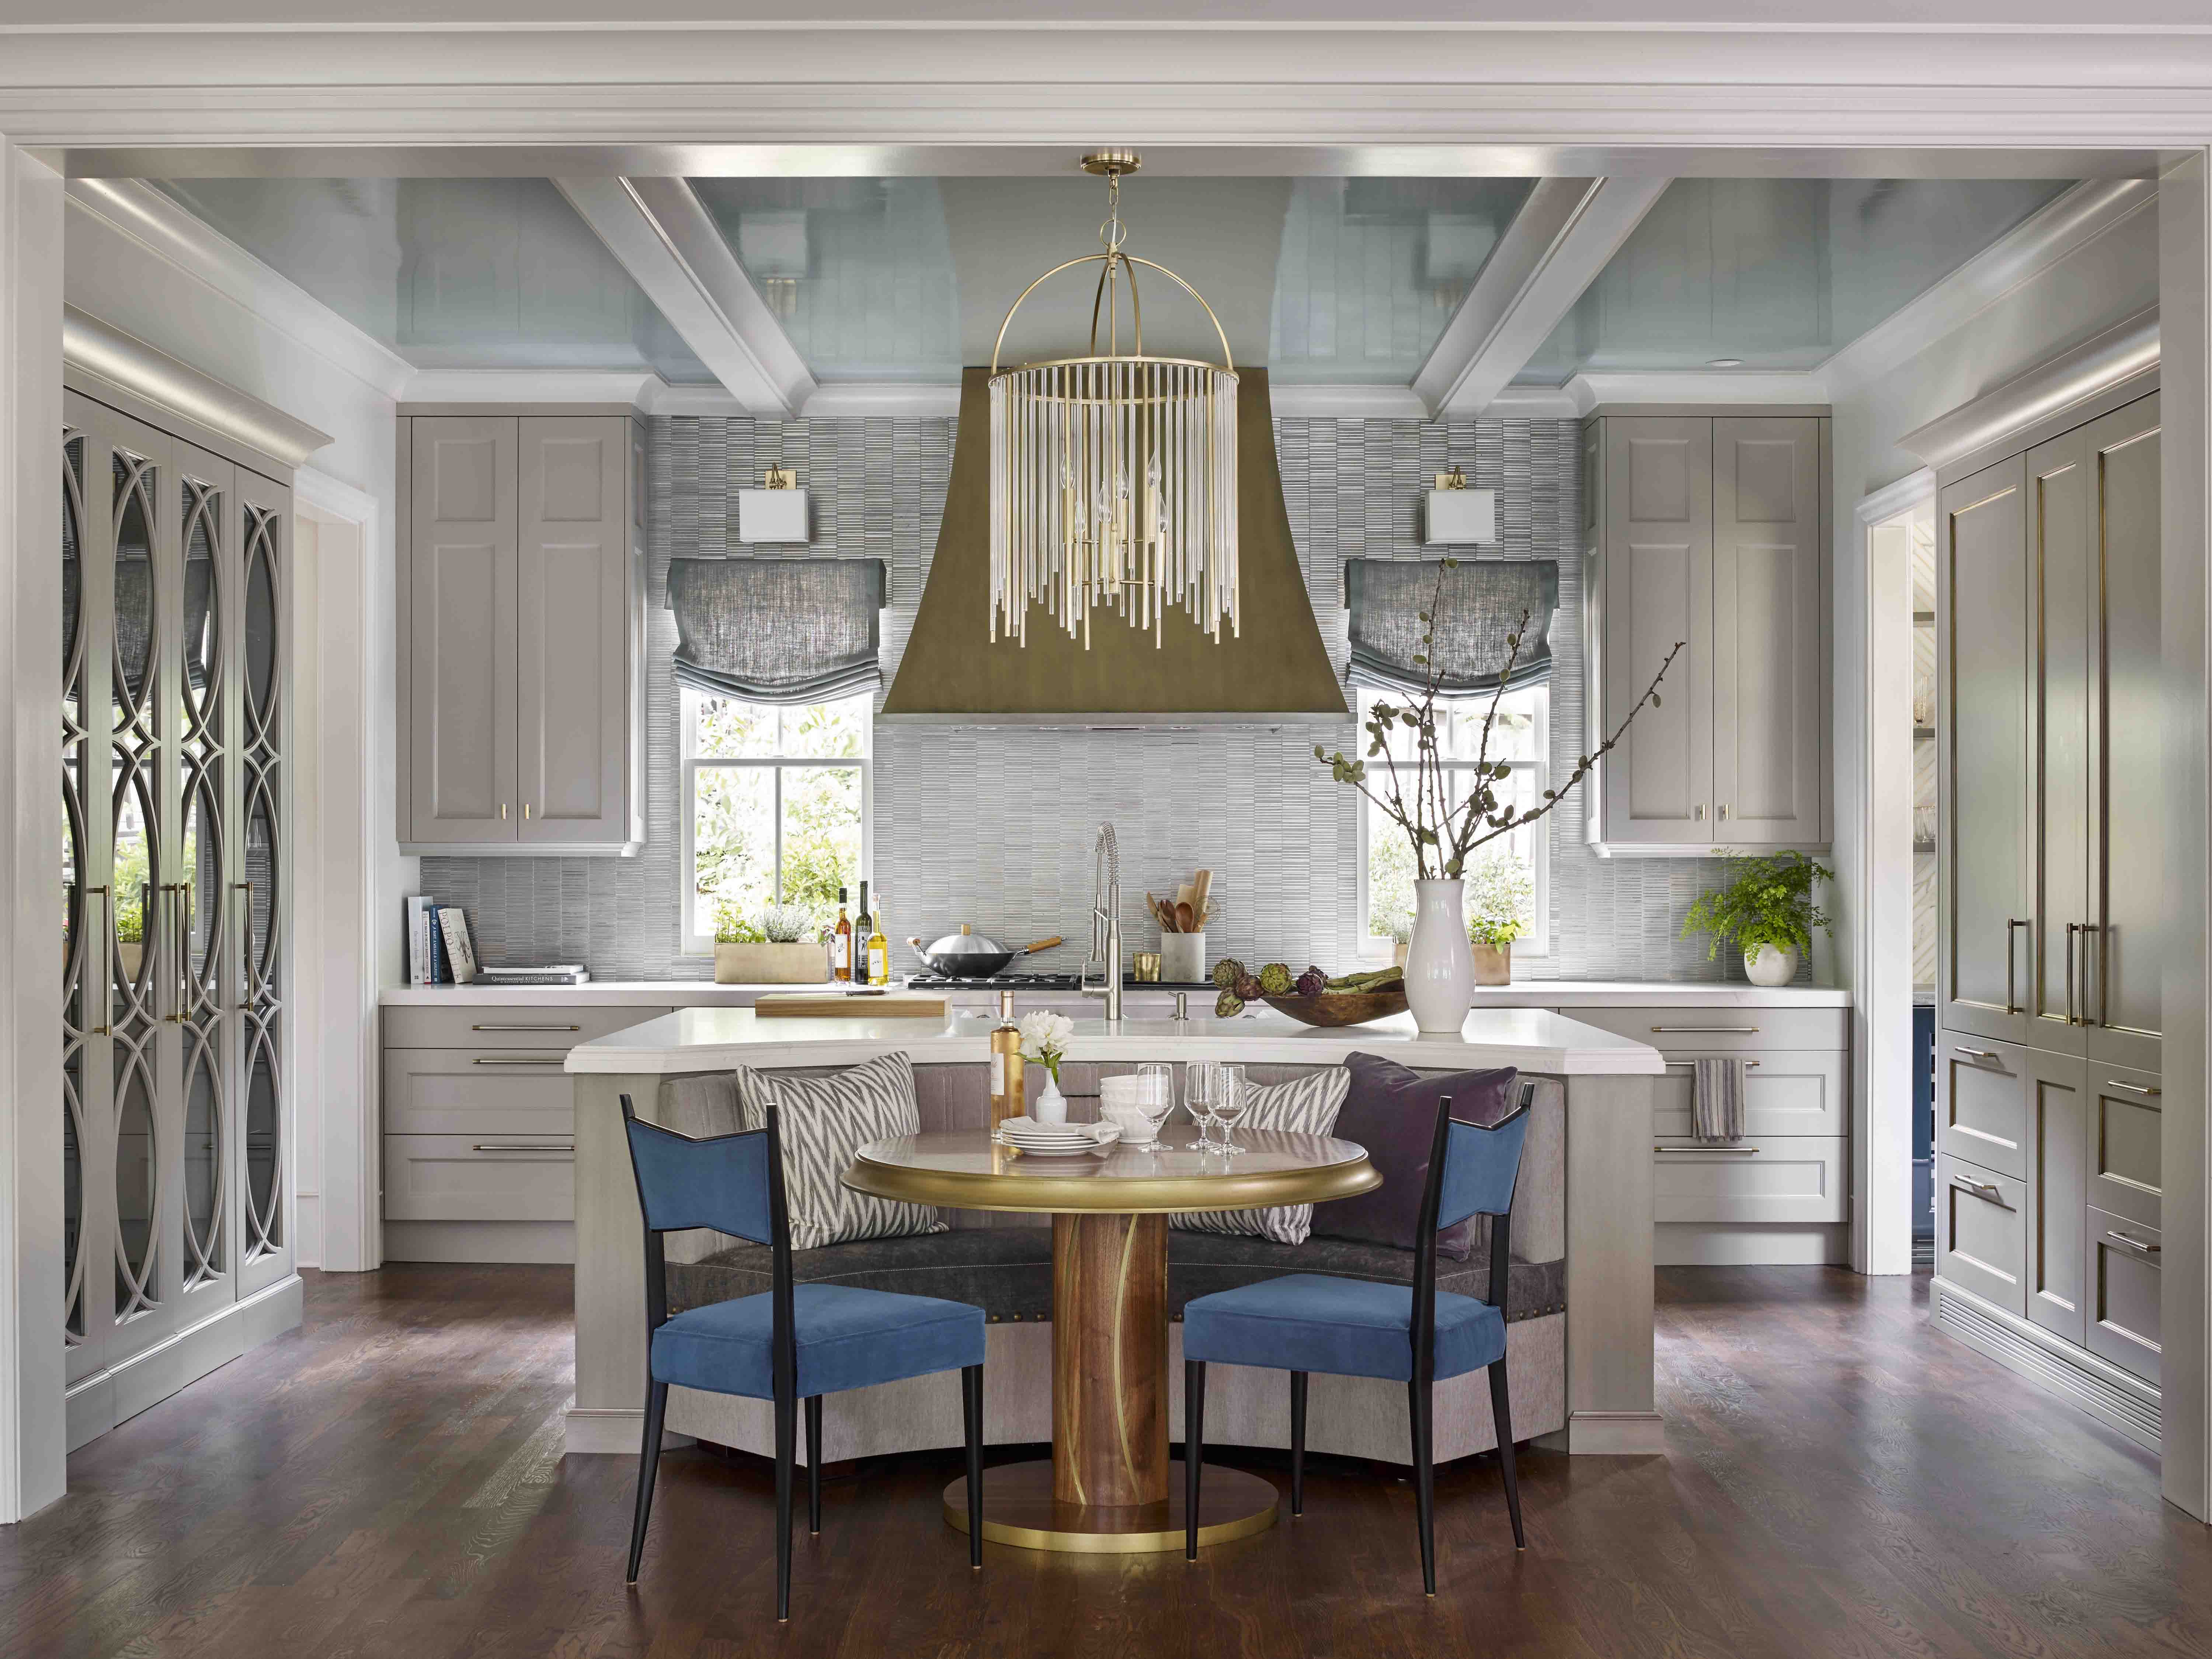 House Beautiful Kitchen of the Year designed by Matthew Quinn